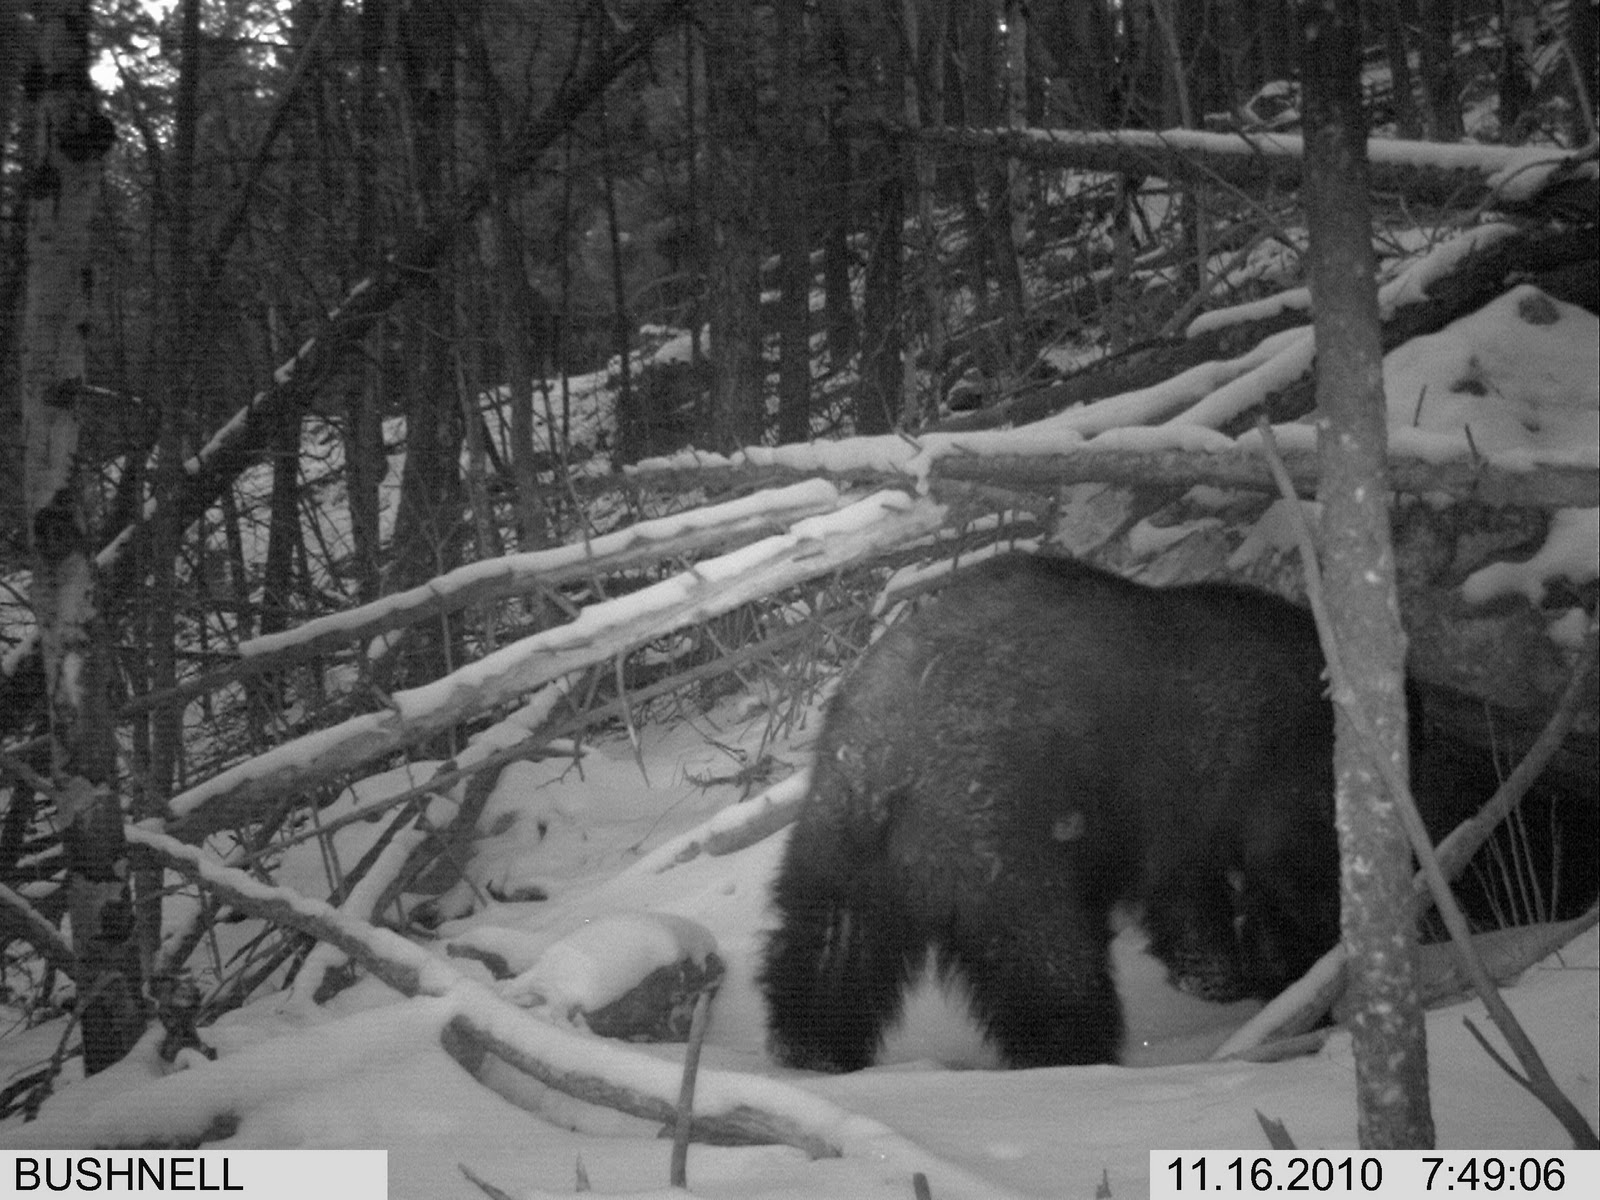 What does a real bear den look like from the inside?